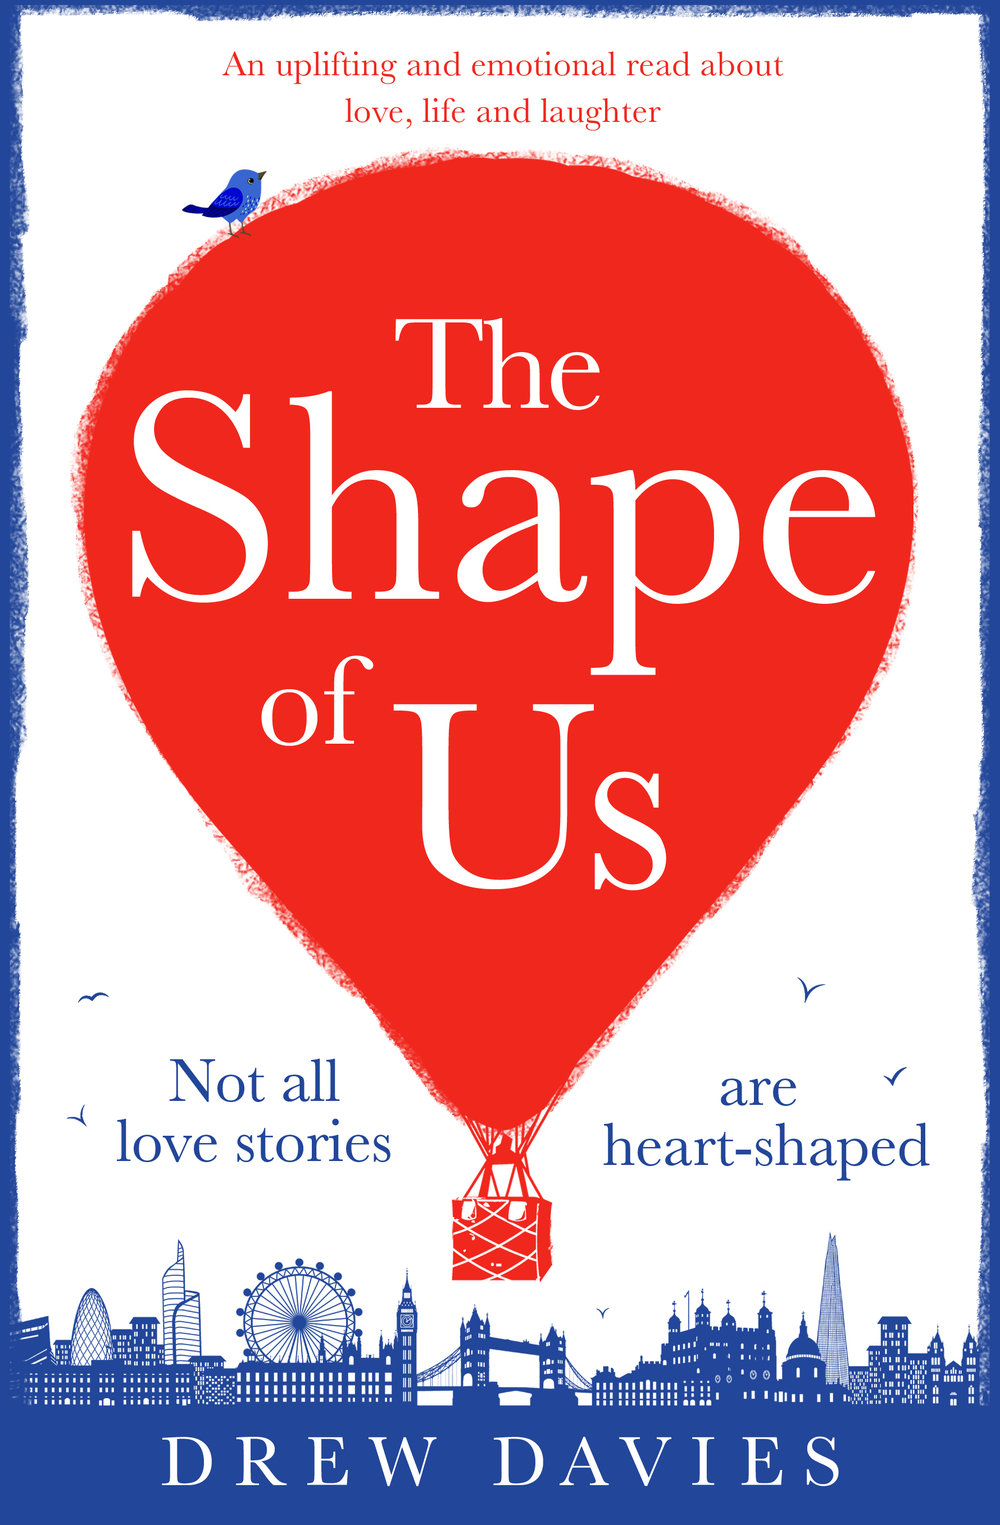 THE SHAPE OF US  Bookouture, Nov 2018 Romantic comedy, 331 pages   One day in London…    Daisy is rushing to work when a stranger on a bicycle almost knocks her over – and then asks for her number.   Dylan , a teenage boy, lives with an illness which means he can't leave his bedroom – but which hasn't stopped him from falling hopelessly in love.   JoJo , a wife in her sixties, is trying desperately to win her beloved husband back from his mistress.   Adam has recently lost his job and lies to his housemate about where he goes every day.  These four total strangers – whose paths cross in the charming city of London – have one thing in common. They are all lonely souls looking for love. But what are the chances of them actually finding it?